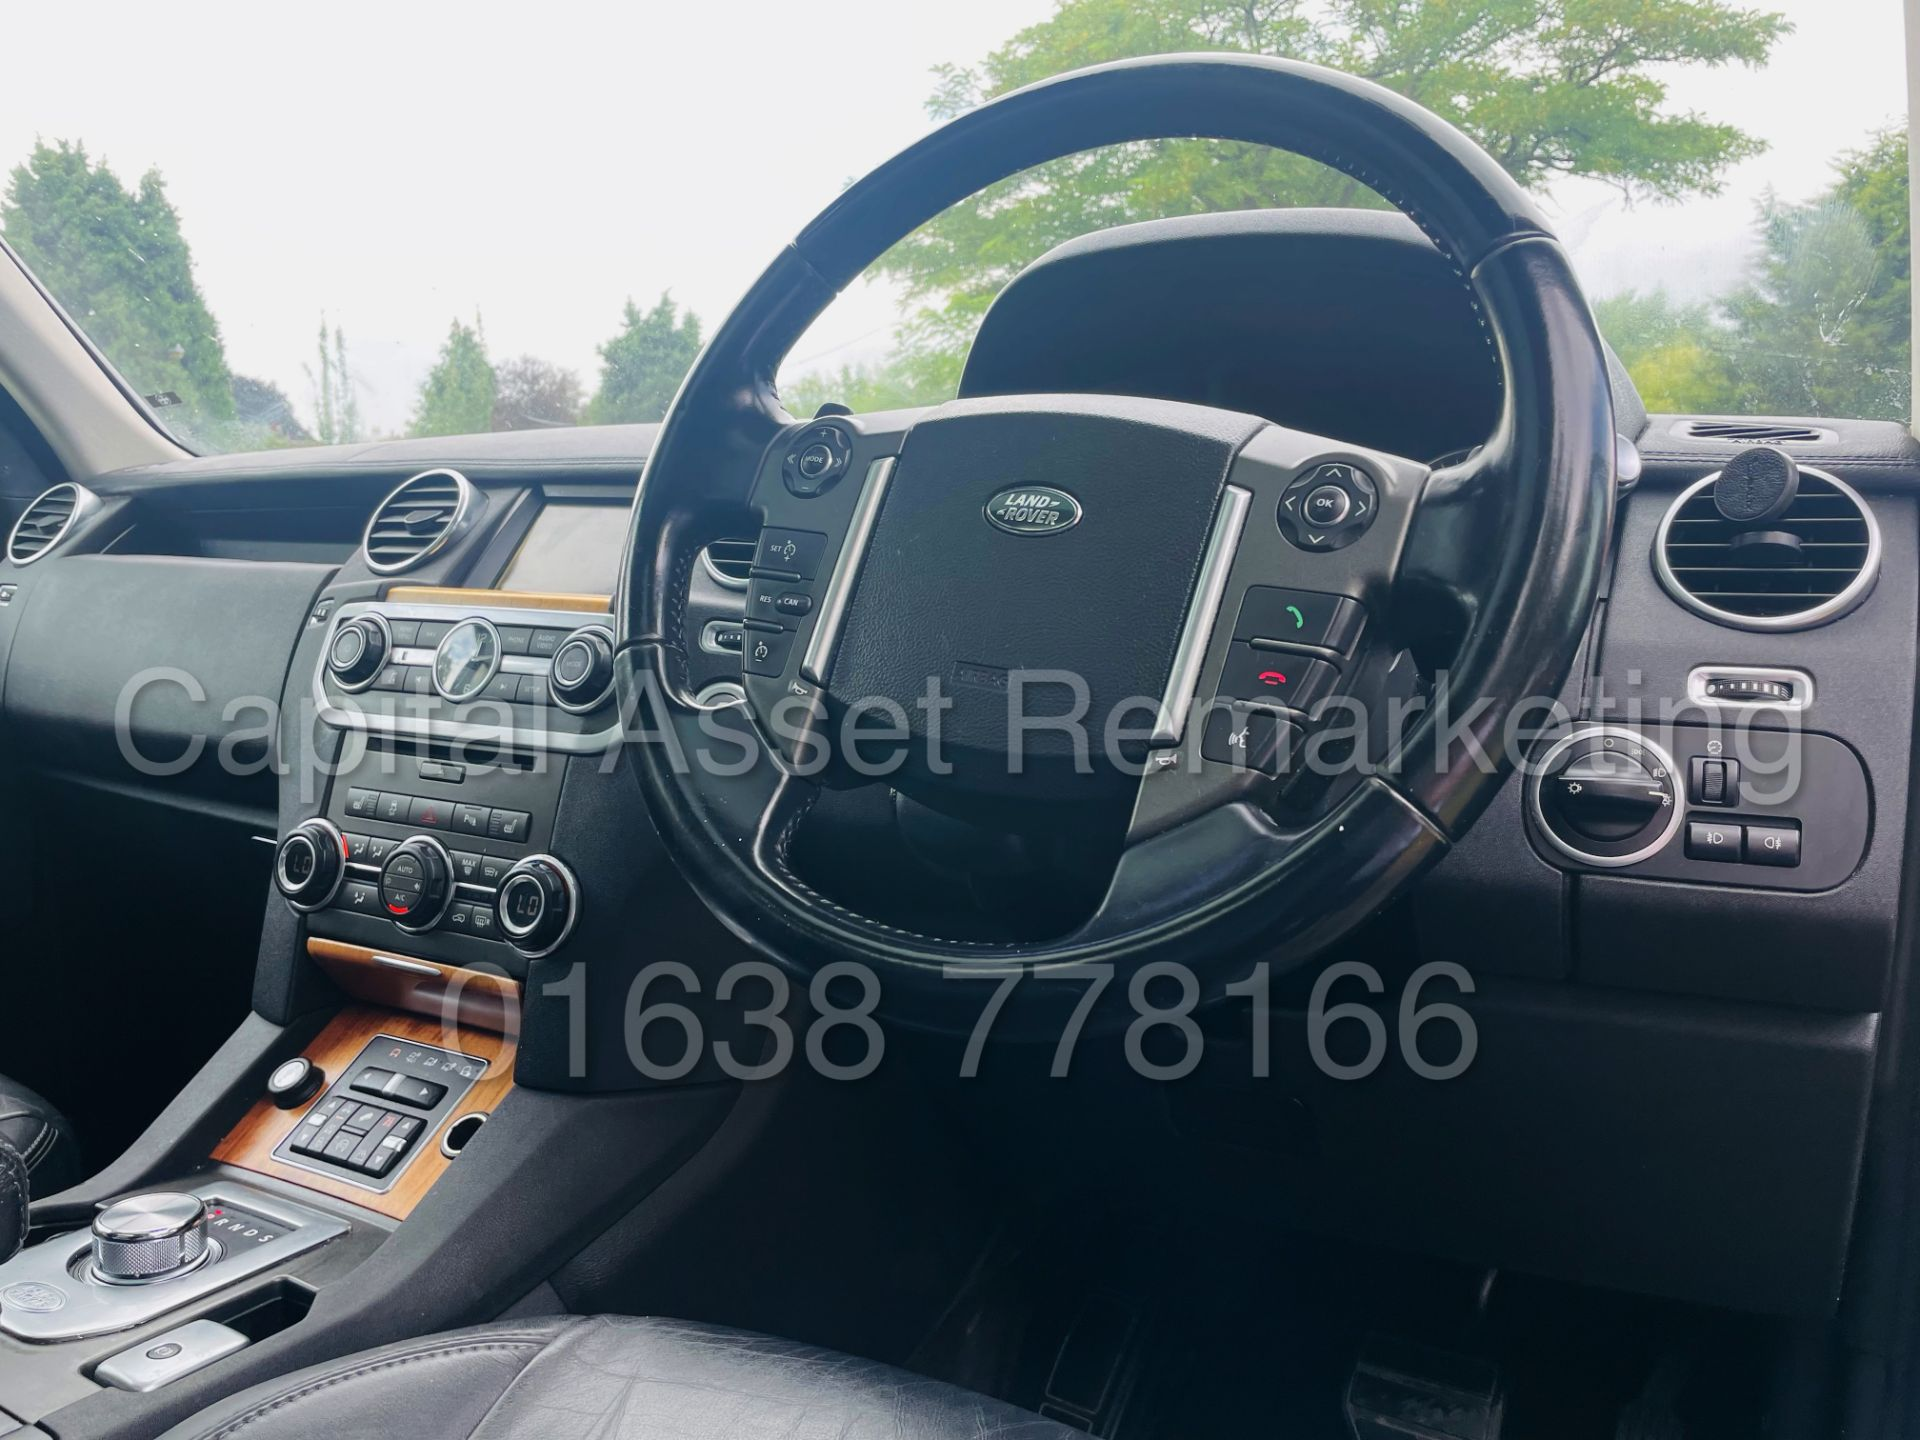 LAND ROVER DISCOVERY 4 *HSE* 7 SEATER SUV (2014 - NEW MODEL) '3.0 SDV6 - 255 BHP - 8 SPEED AUTO' - Image 46 of 61